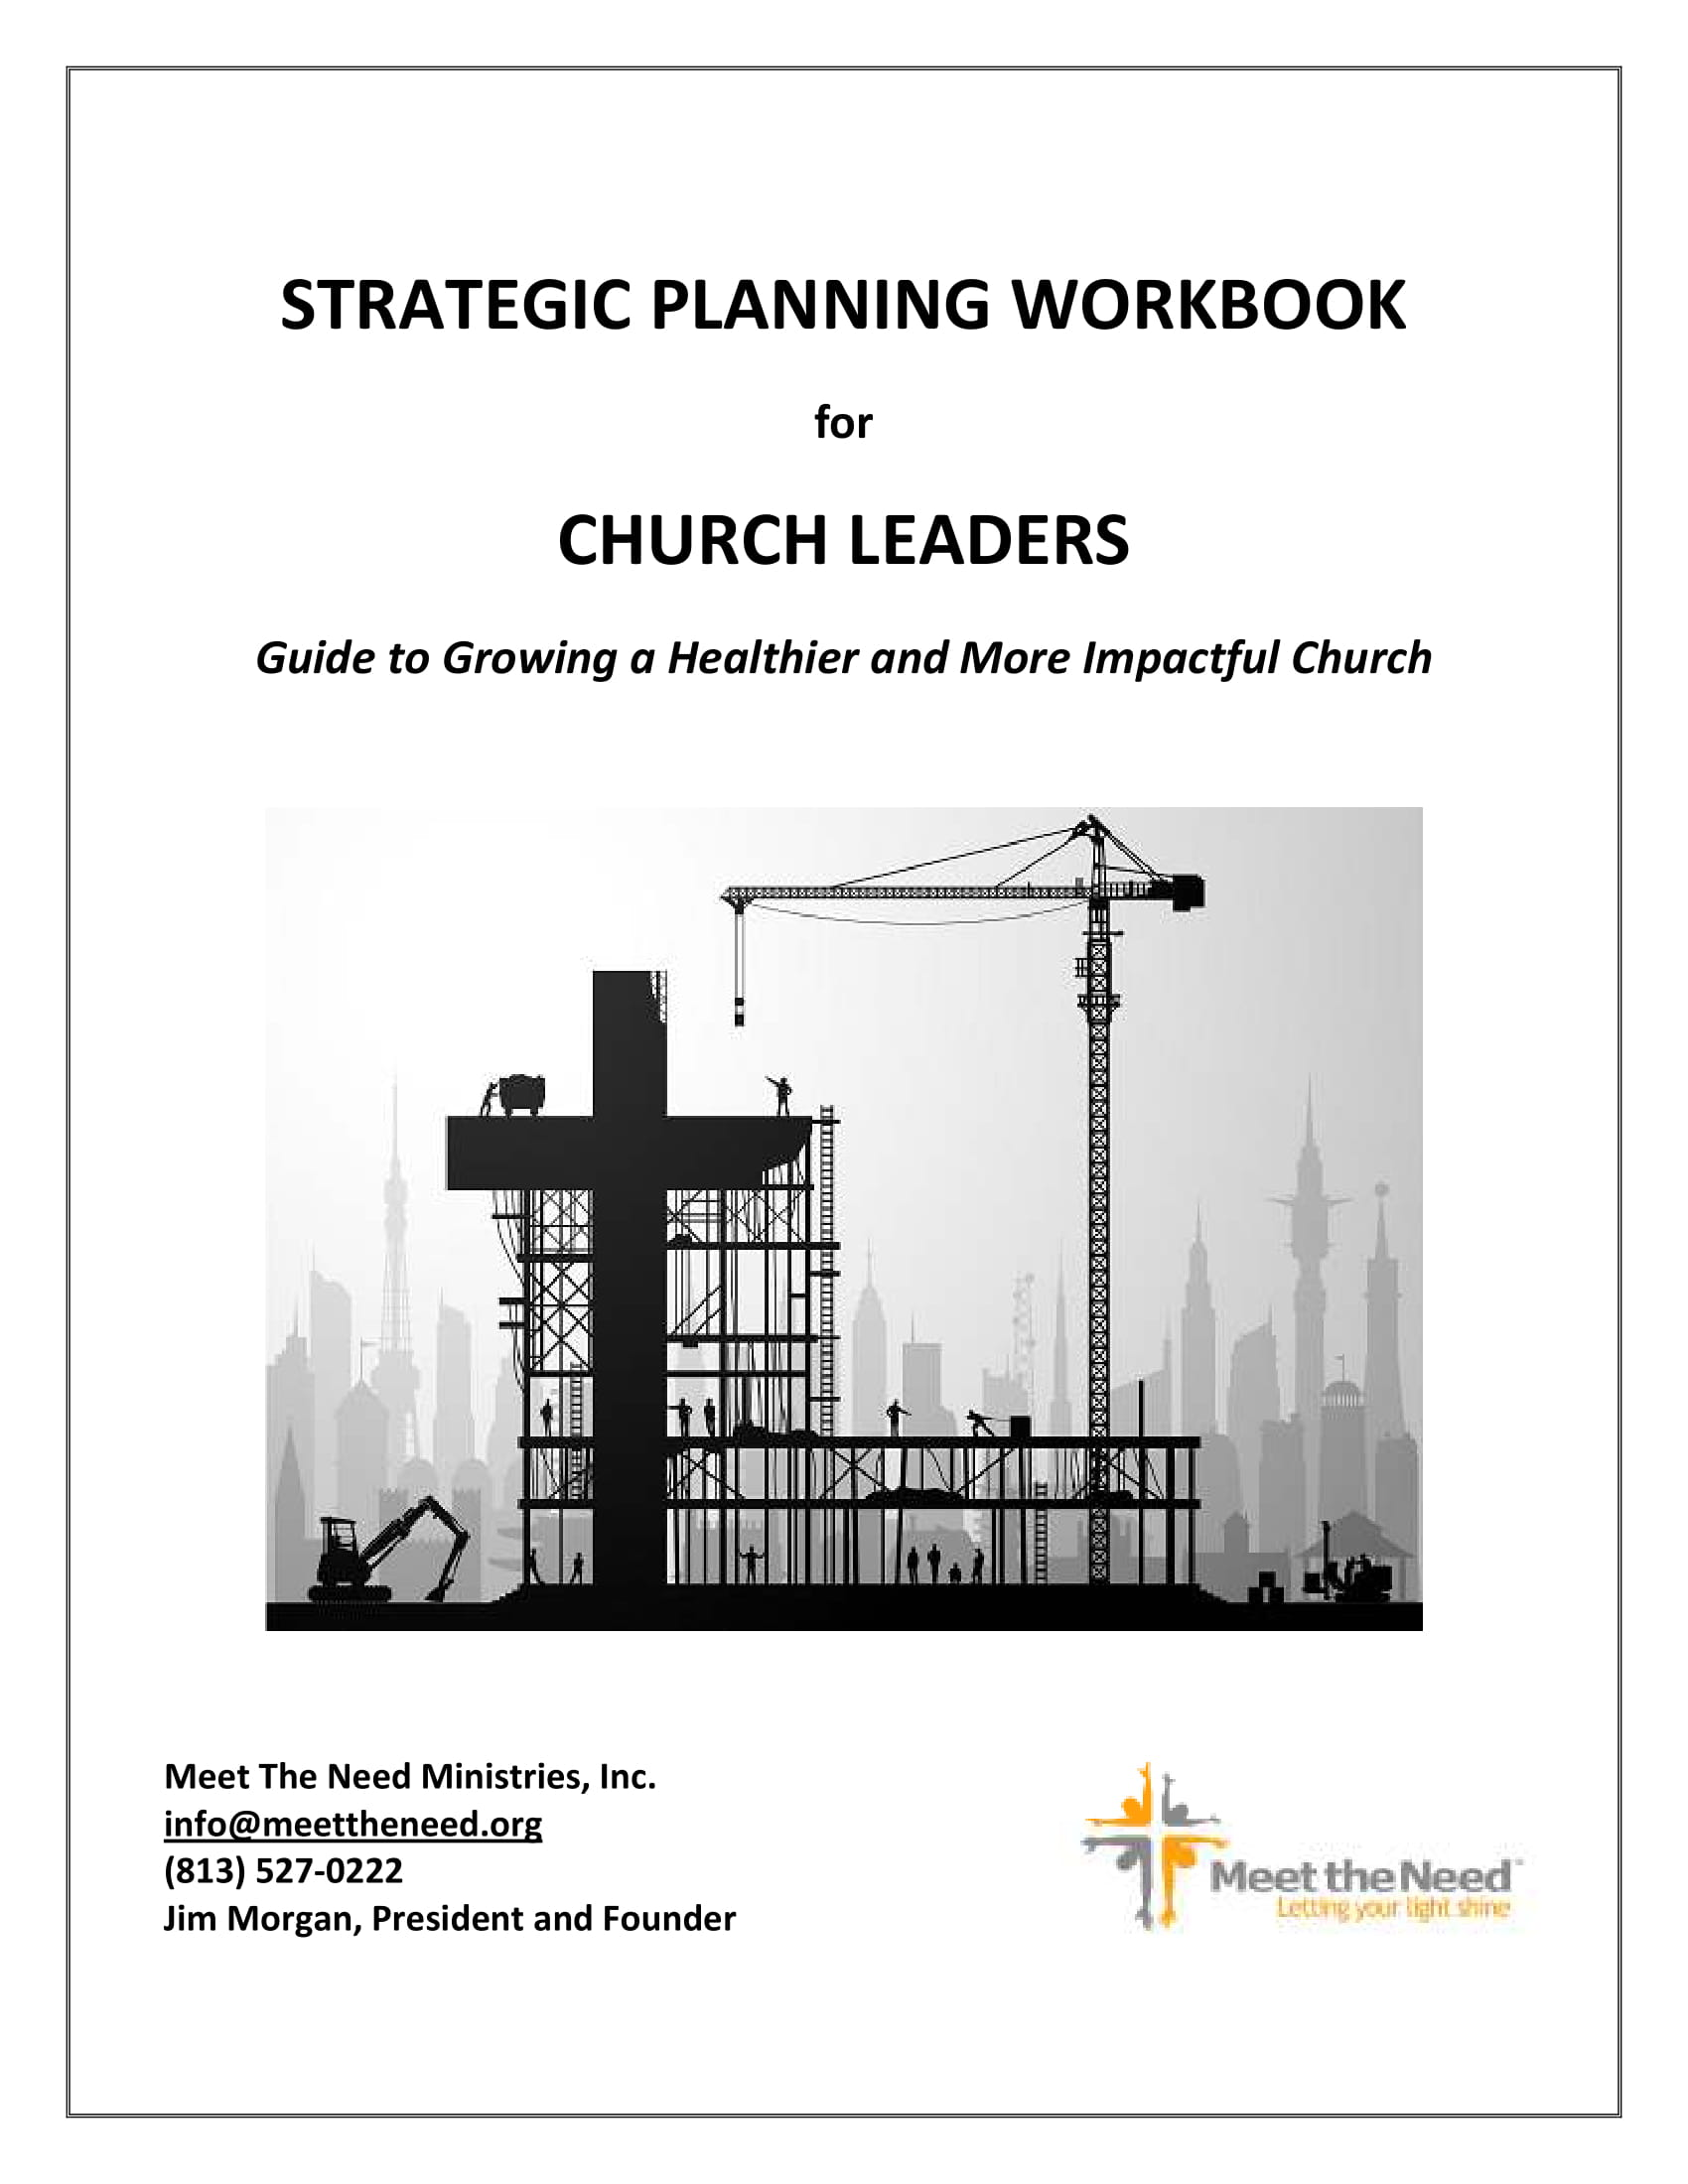 church planning strategic marketing guide for church leaders example 001